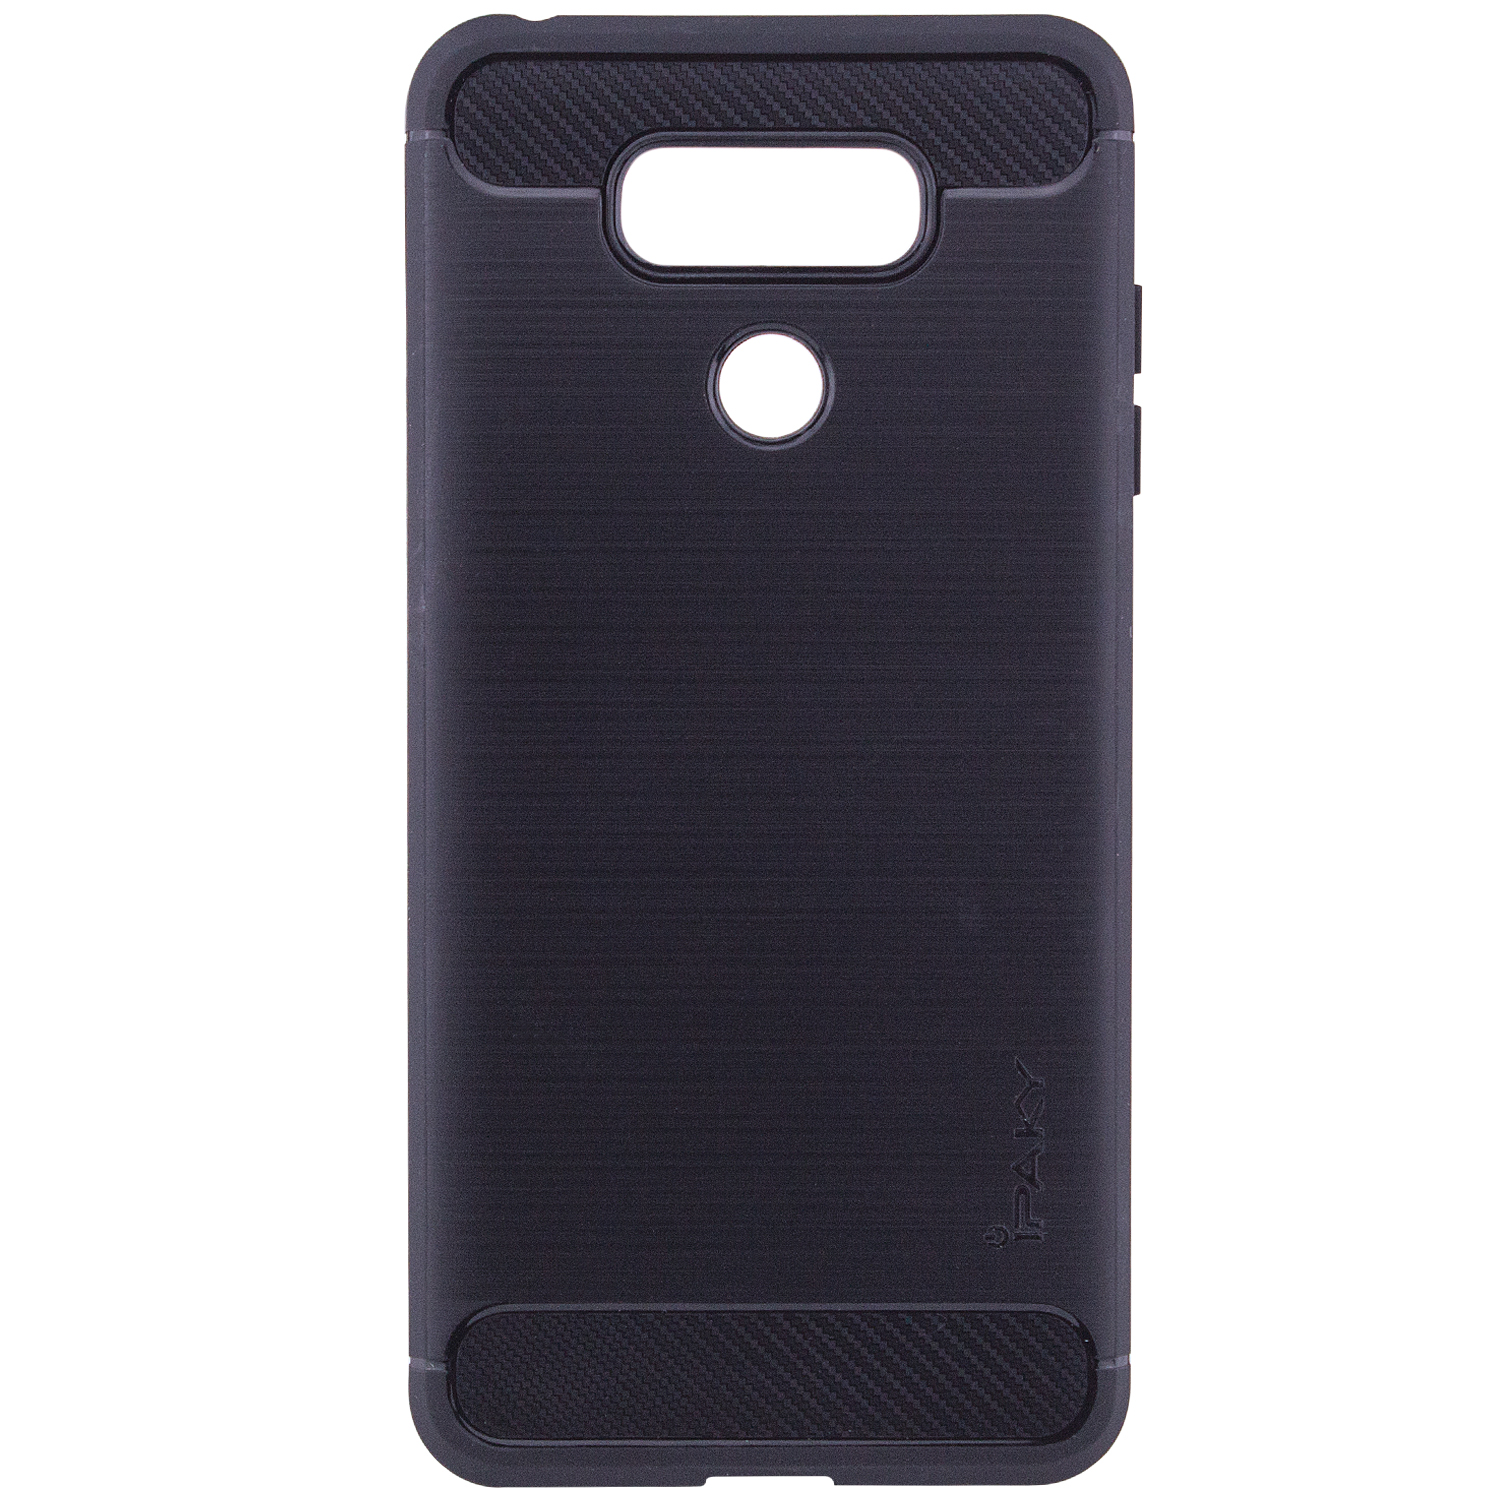 TPU чехол iPaky Slim Series для LG G6 / G6 Plus H870 / H870DS